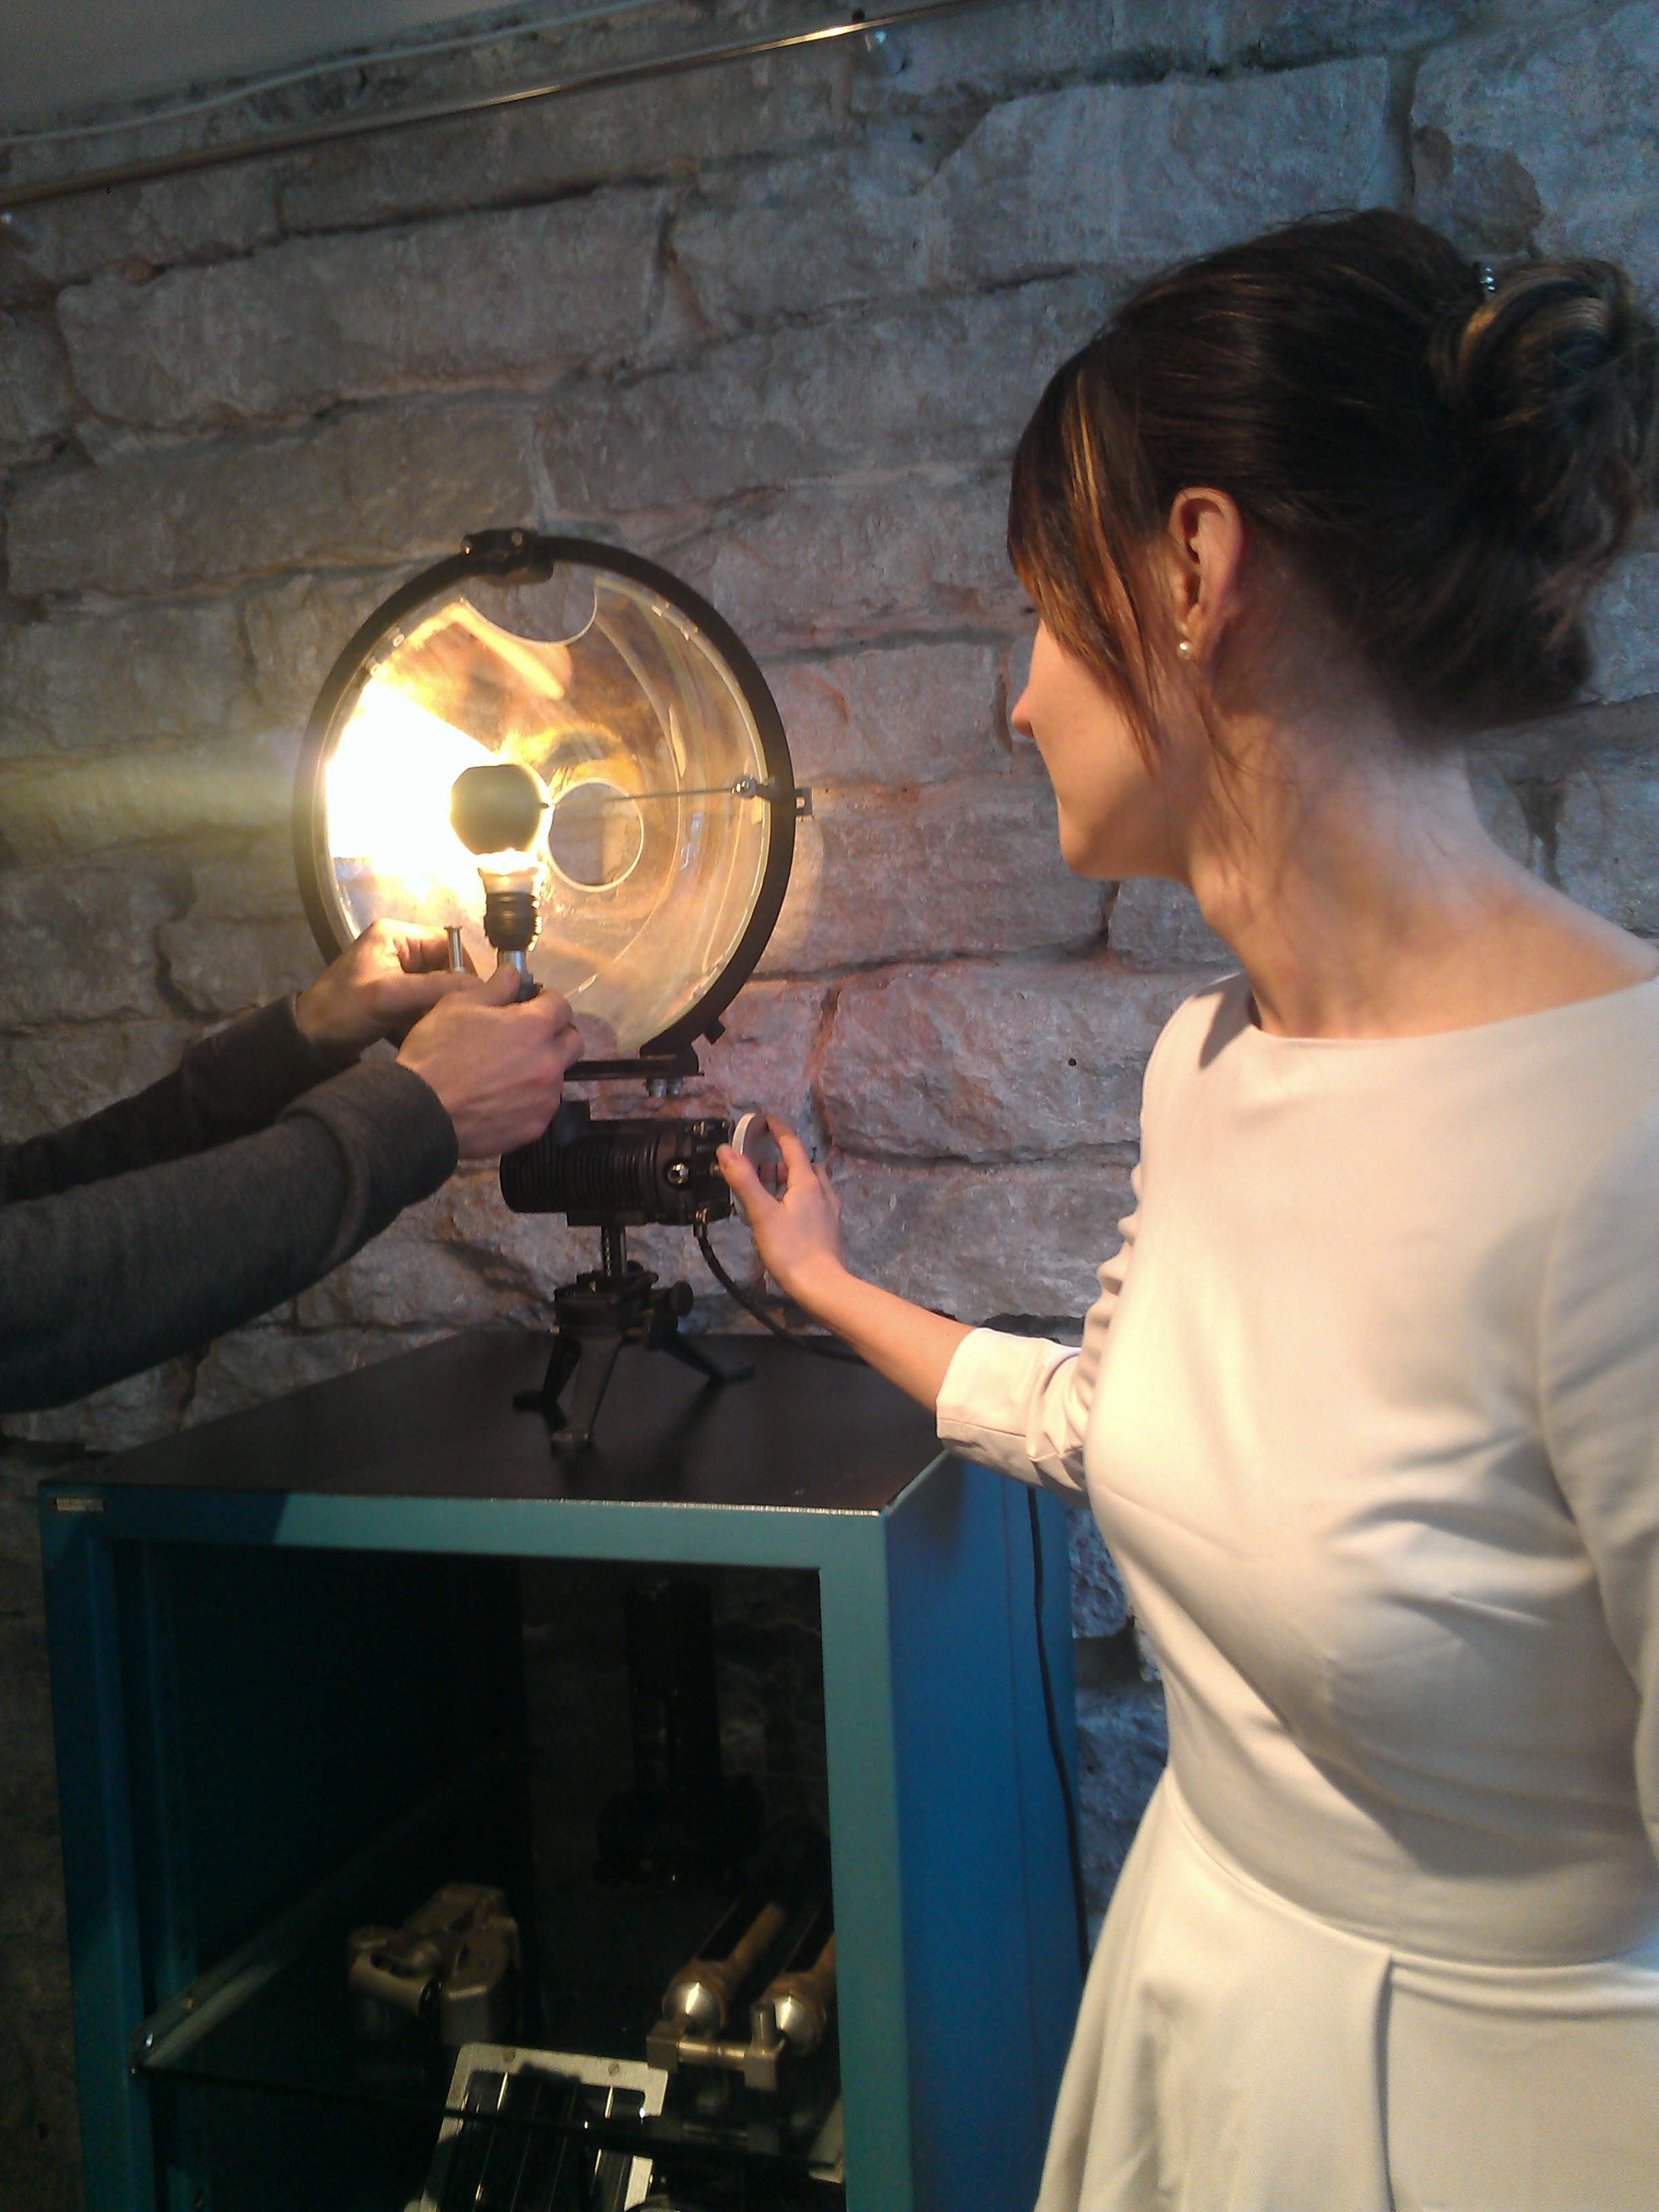 Ain's daughter Leili demonstrates how this lamp, made from an old vehicle headlamp, can be adjusted to expose more or less light, or to change the angle at which it shines.